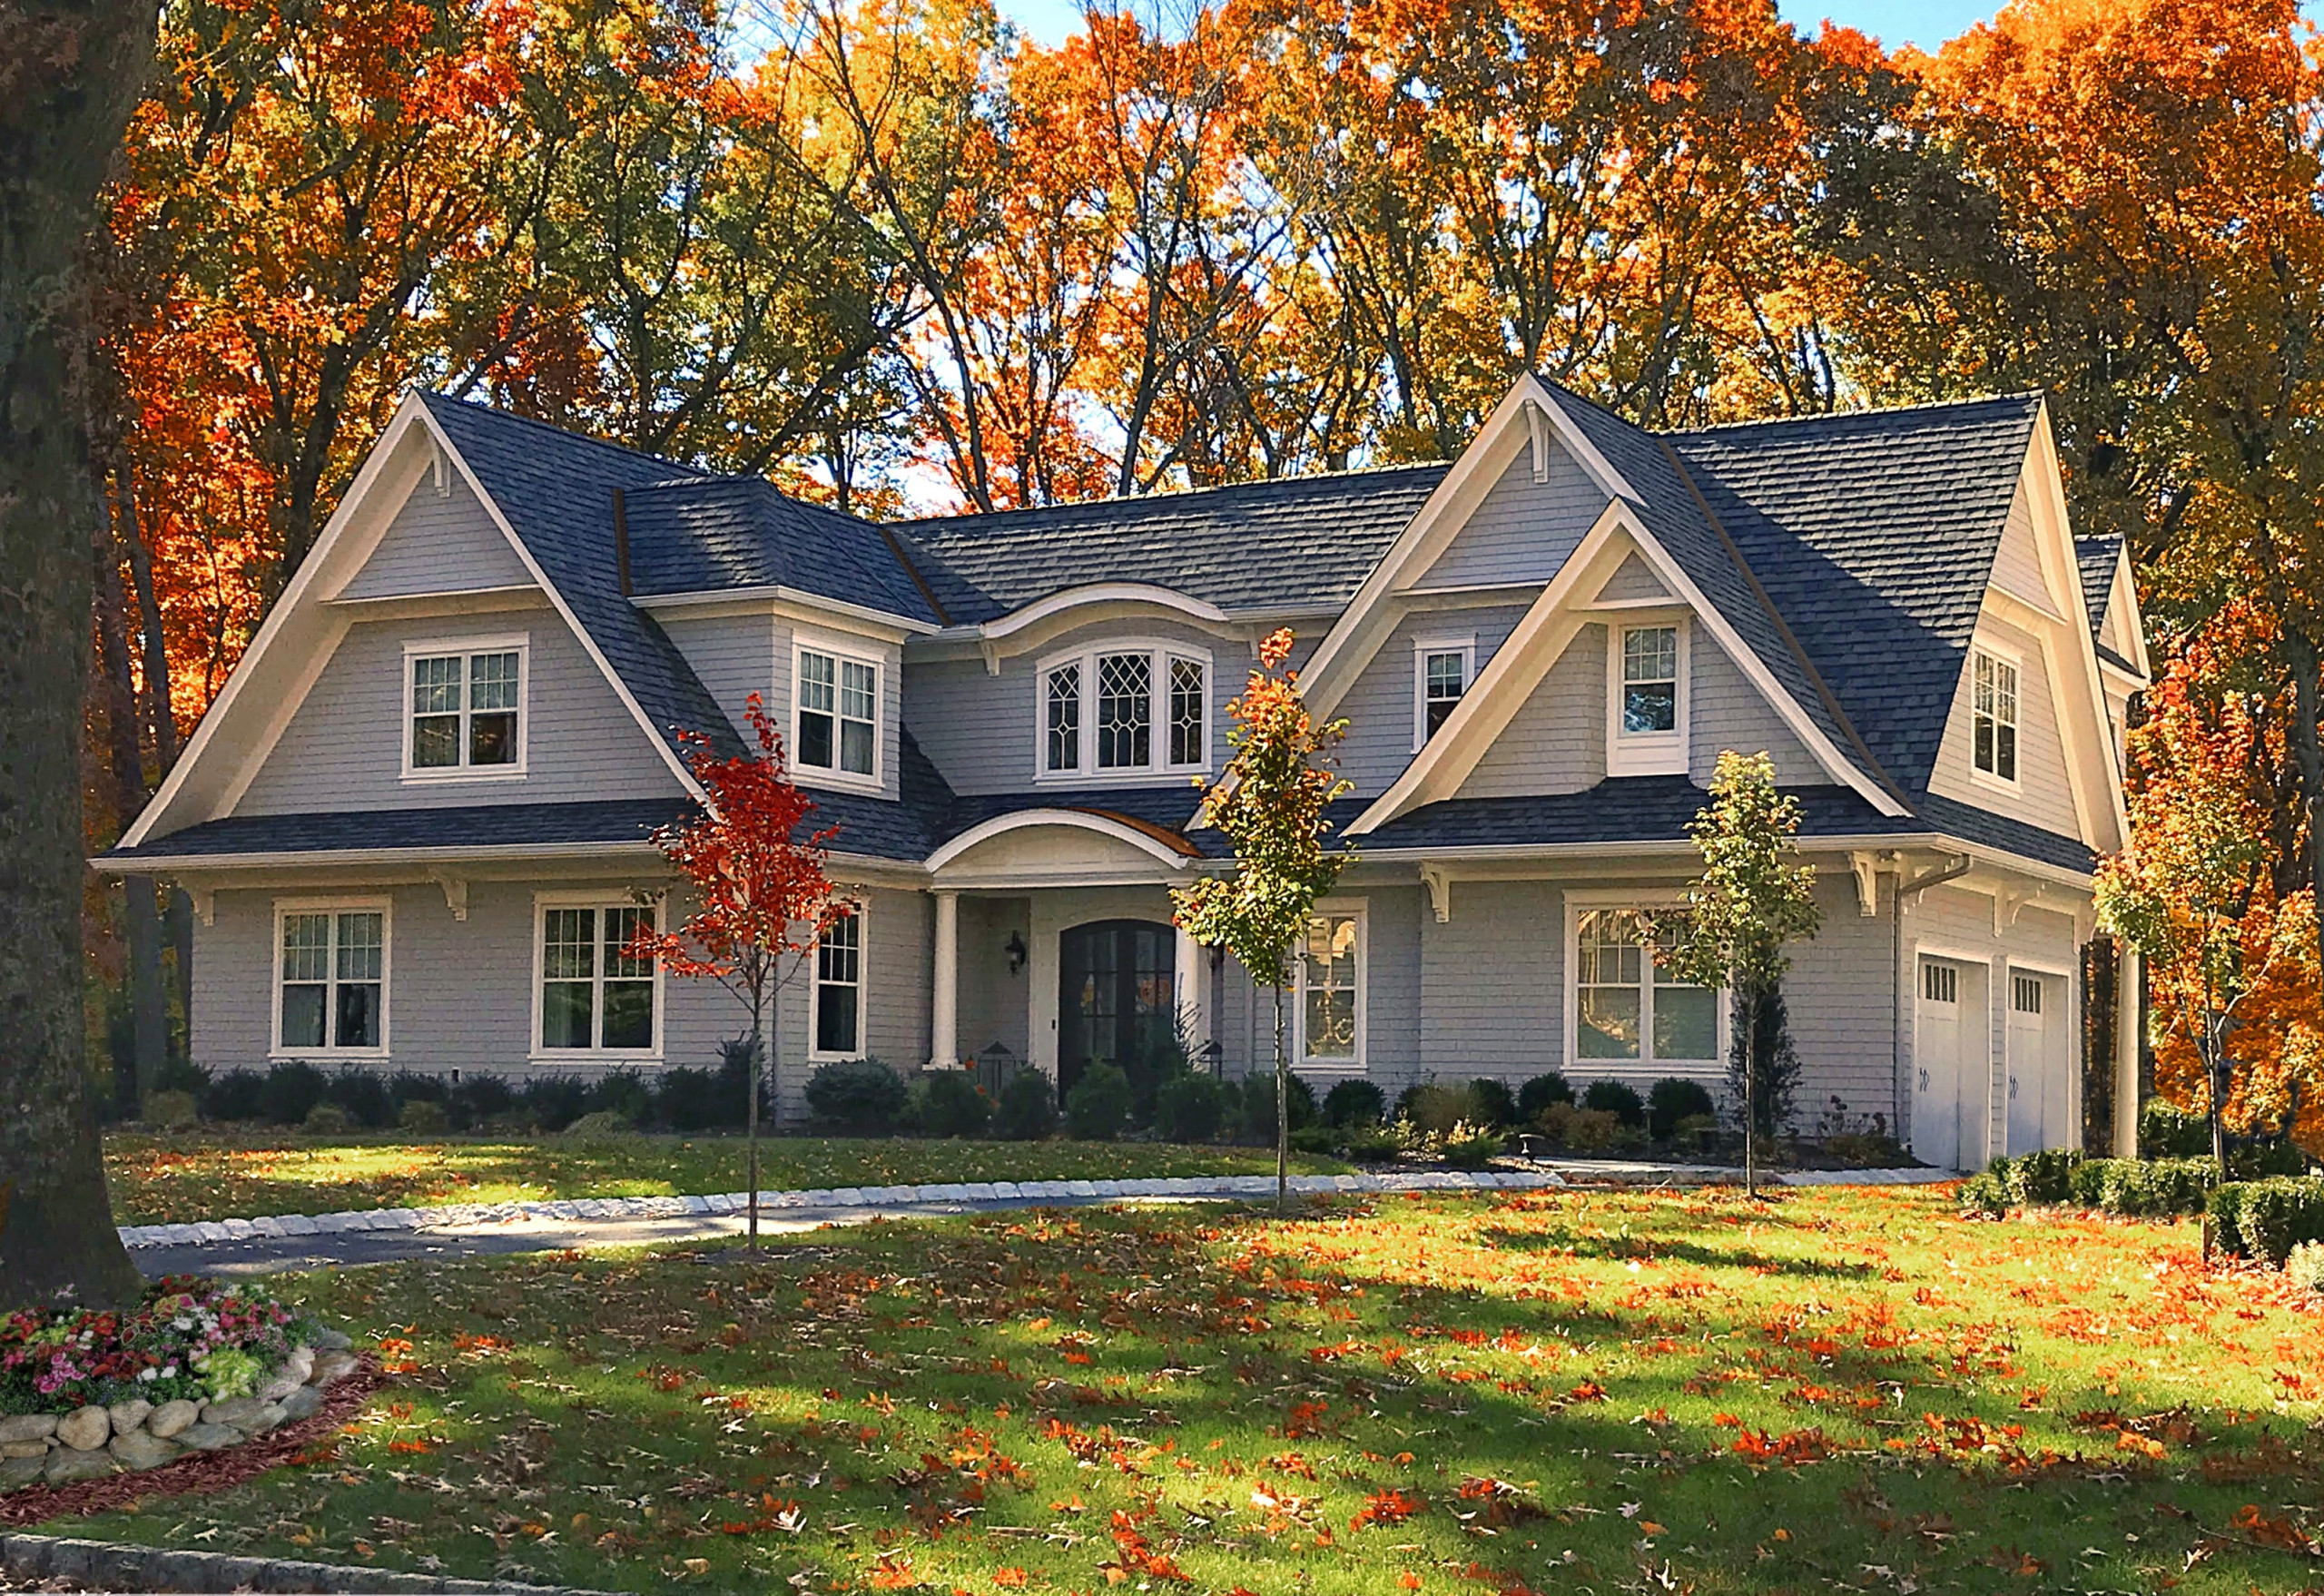 Craftsman Style Home in Allendale, NJ